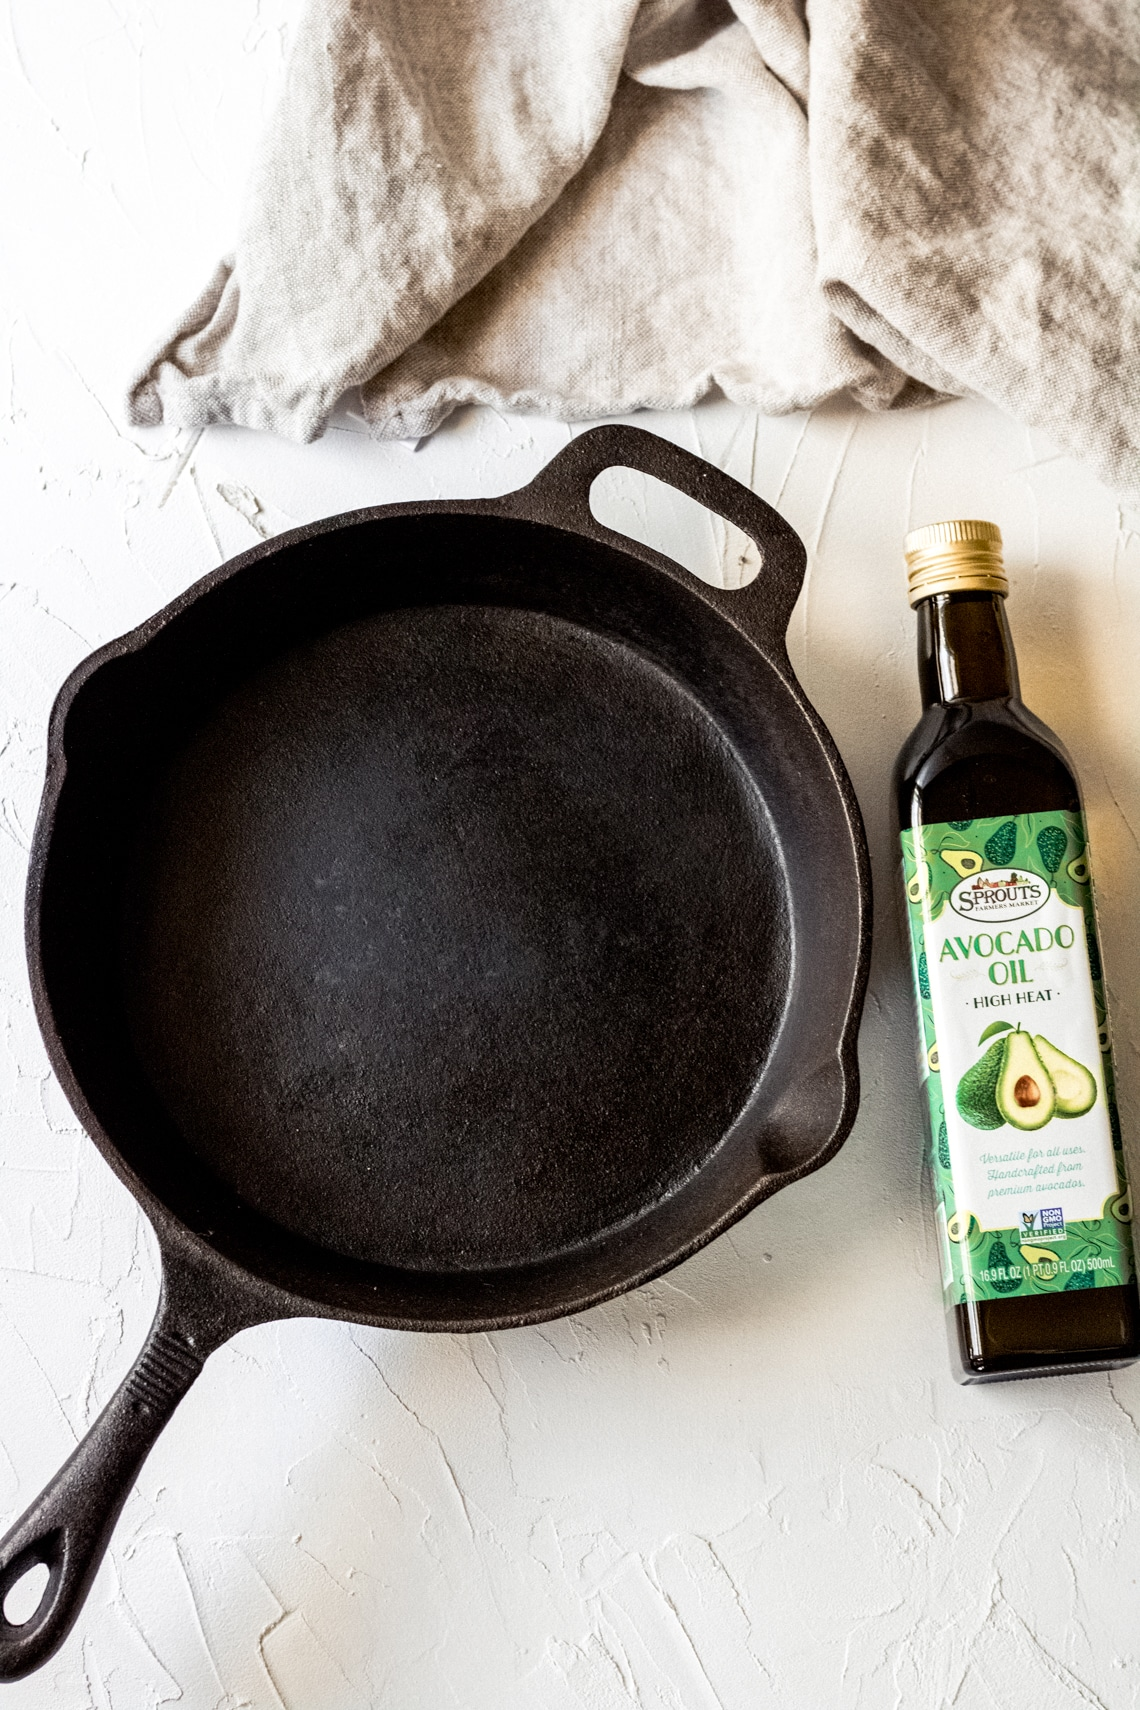 a cast iron skillet and bottle of avocado oil